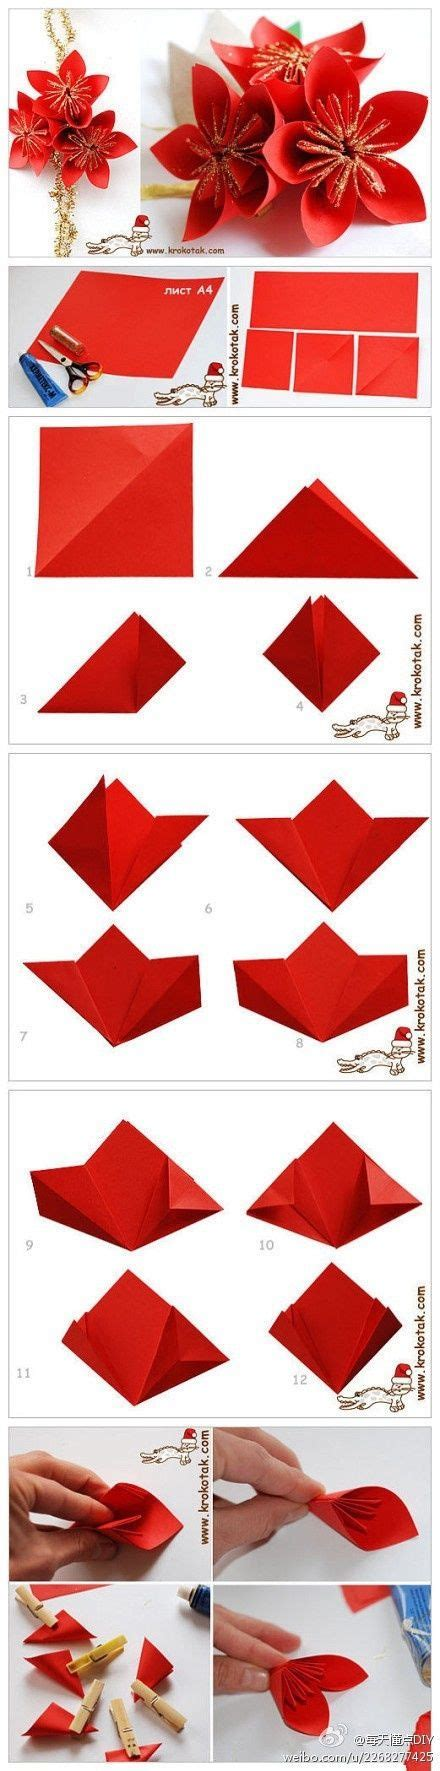 Origami Poinsettia Flower - origami poinsettia pictures photos and images for